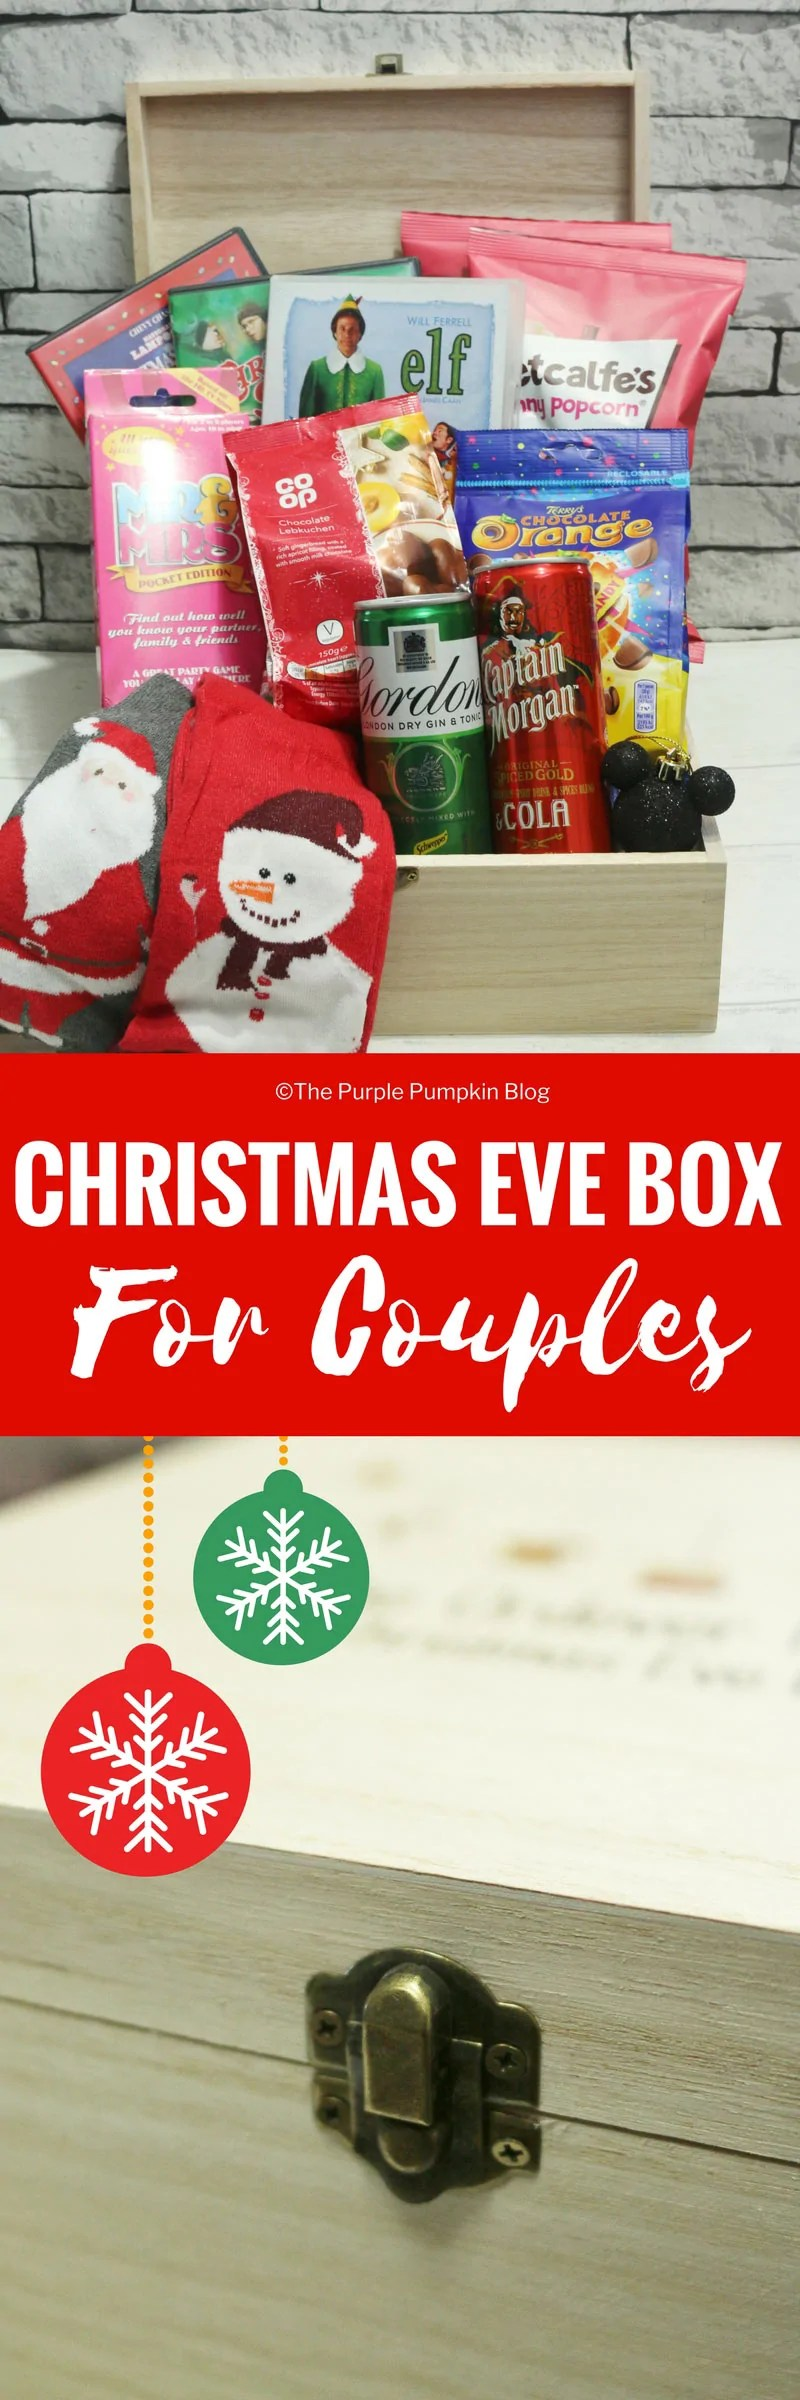 Christmas Eve Box For Couples